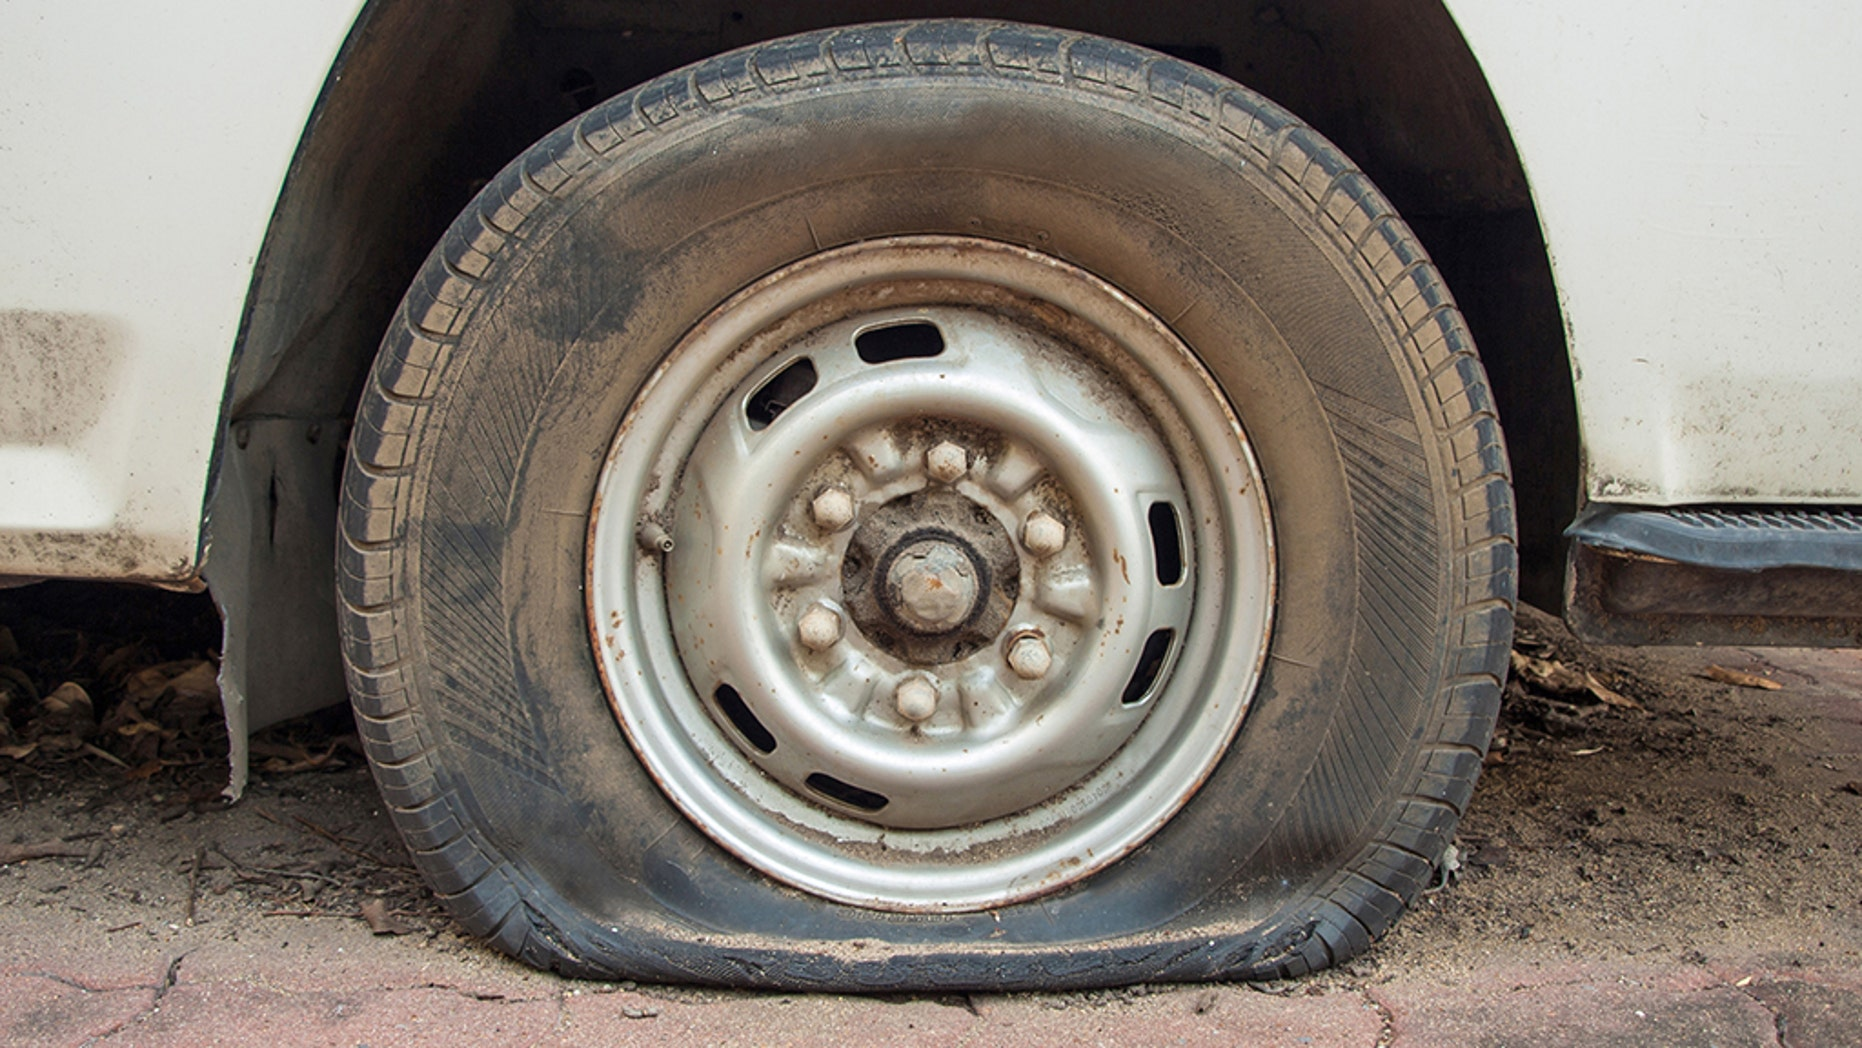 A police chief in Palestine was suspended for helping a group of Israeli soldiers change a flat tire. (istock)